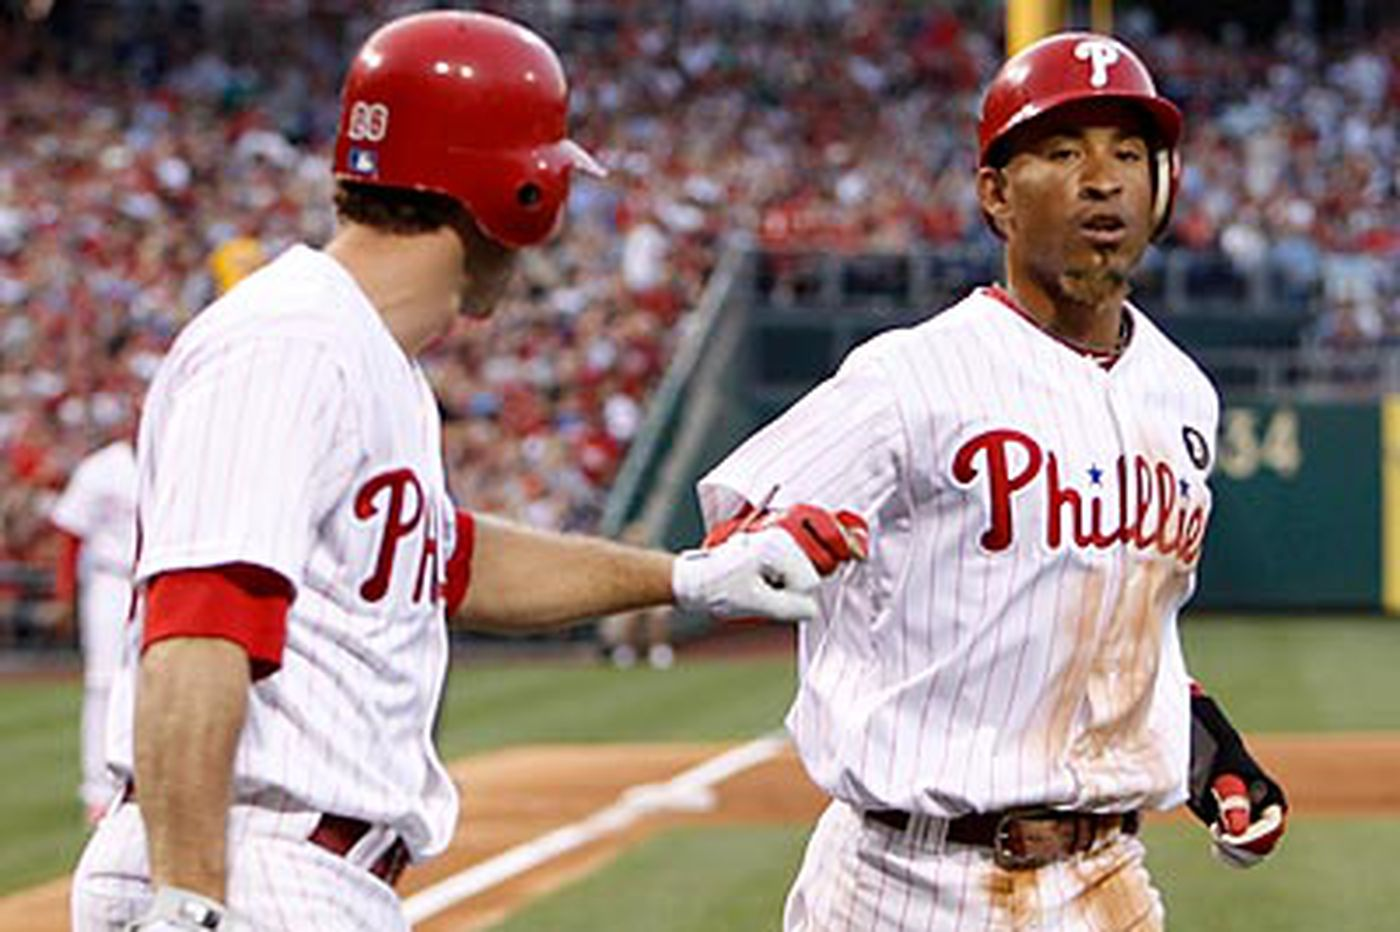 Phillies beat Dodgers, 3-1